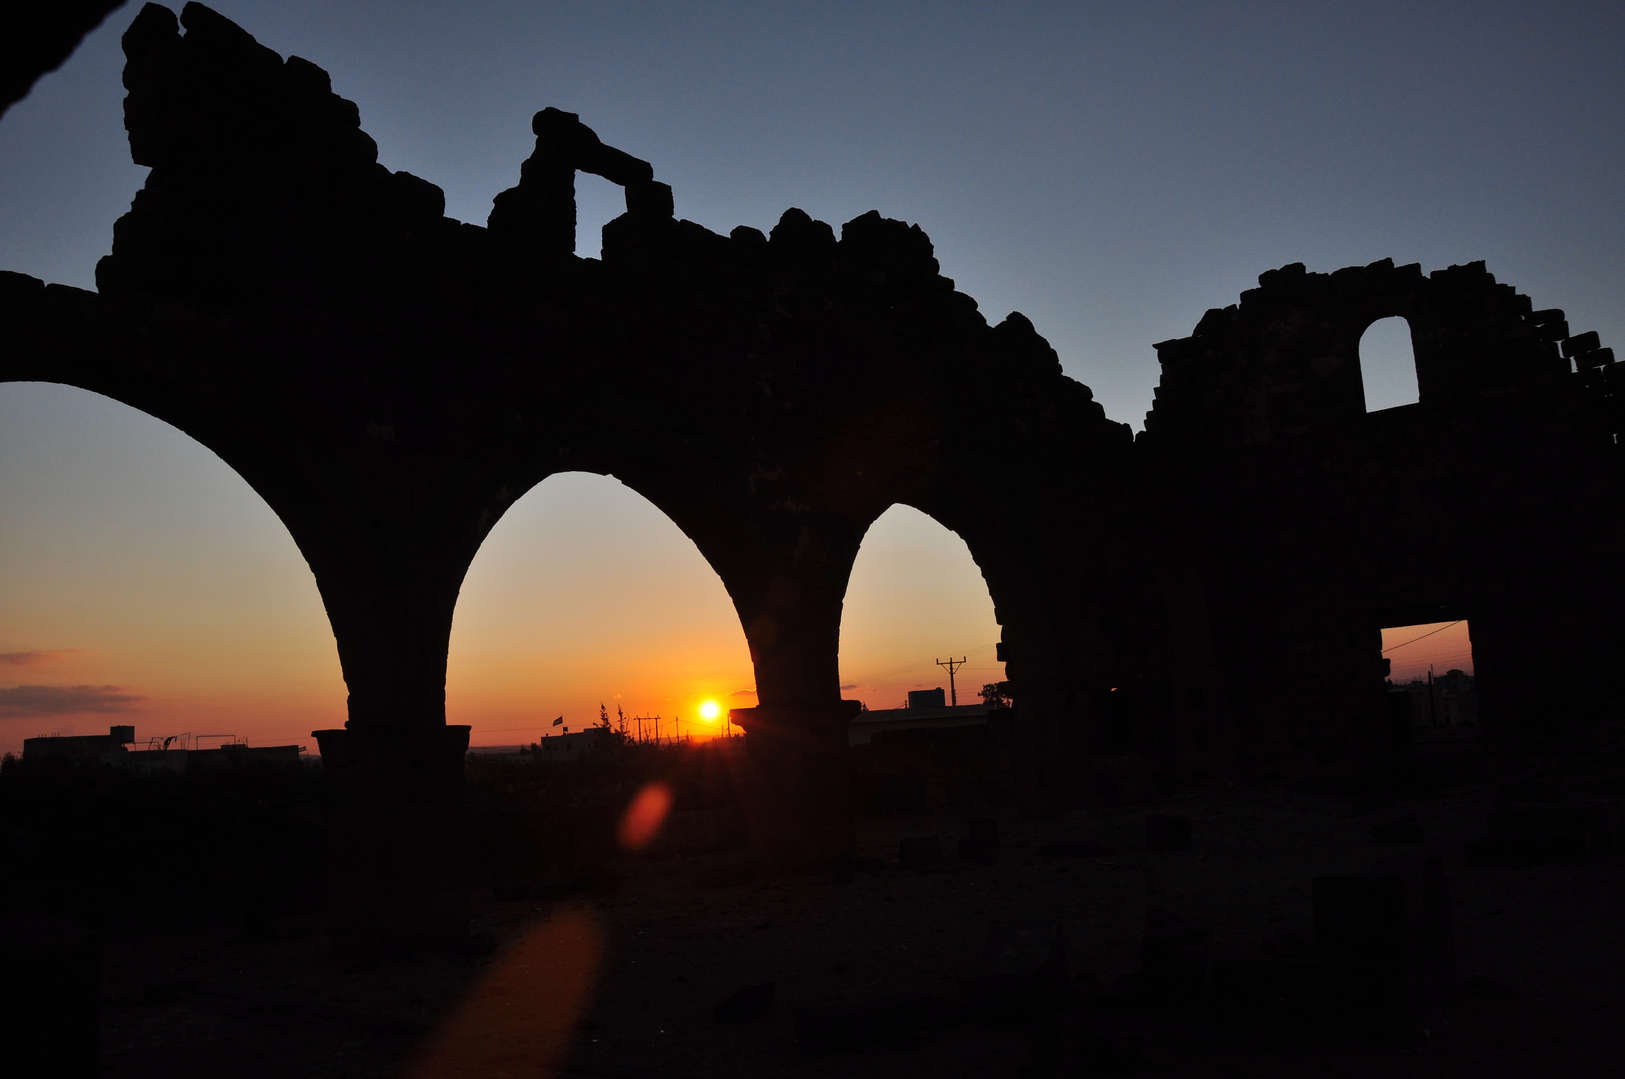 UJ sunset arches.JPG